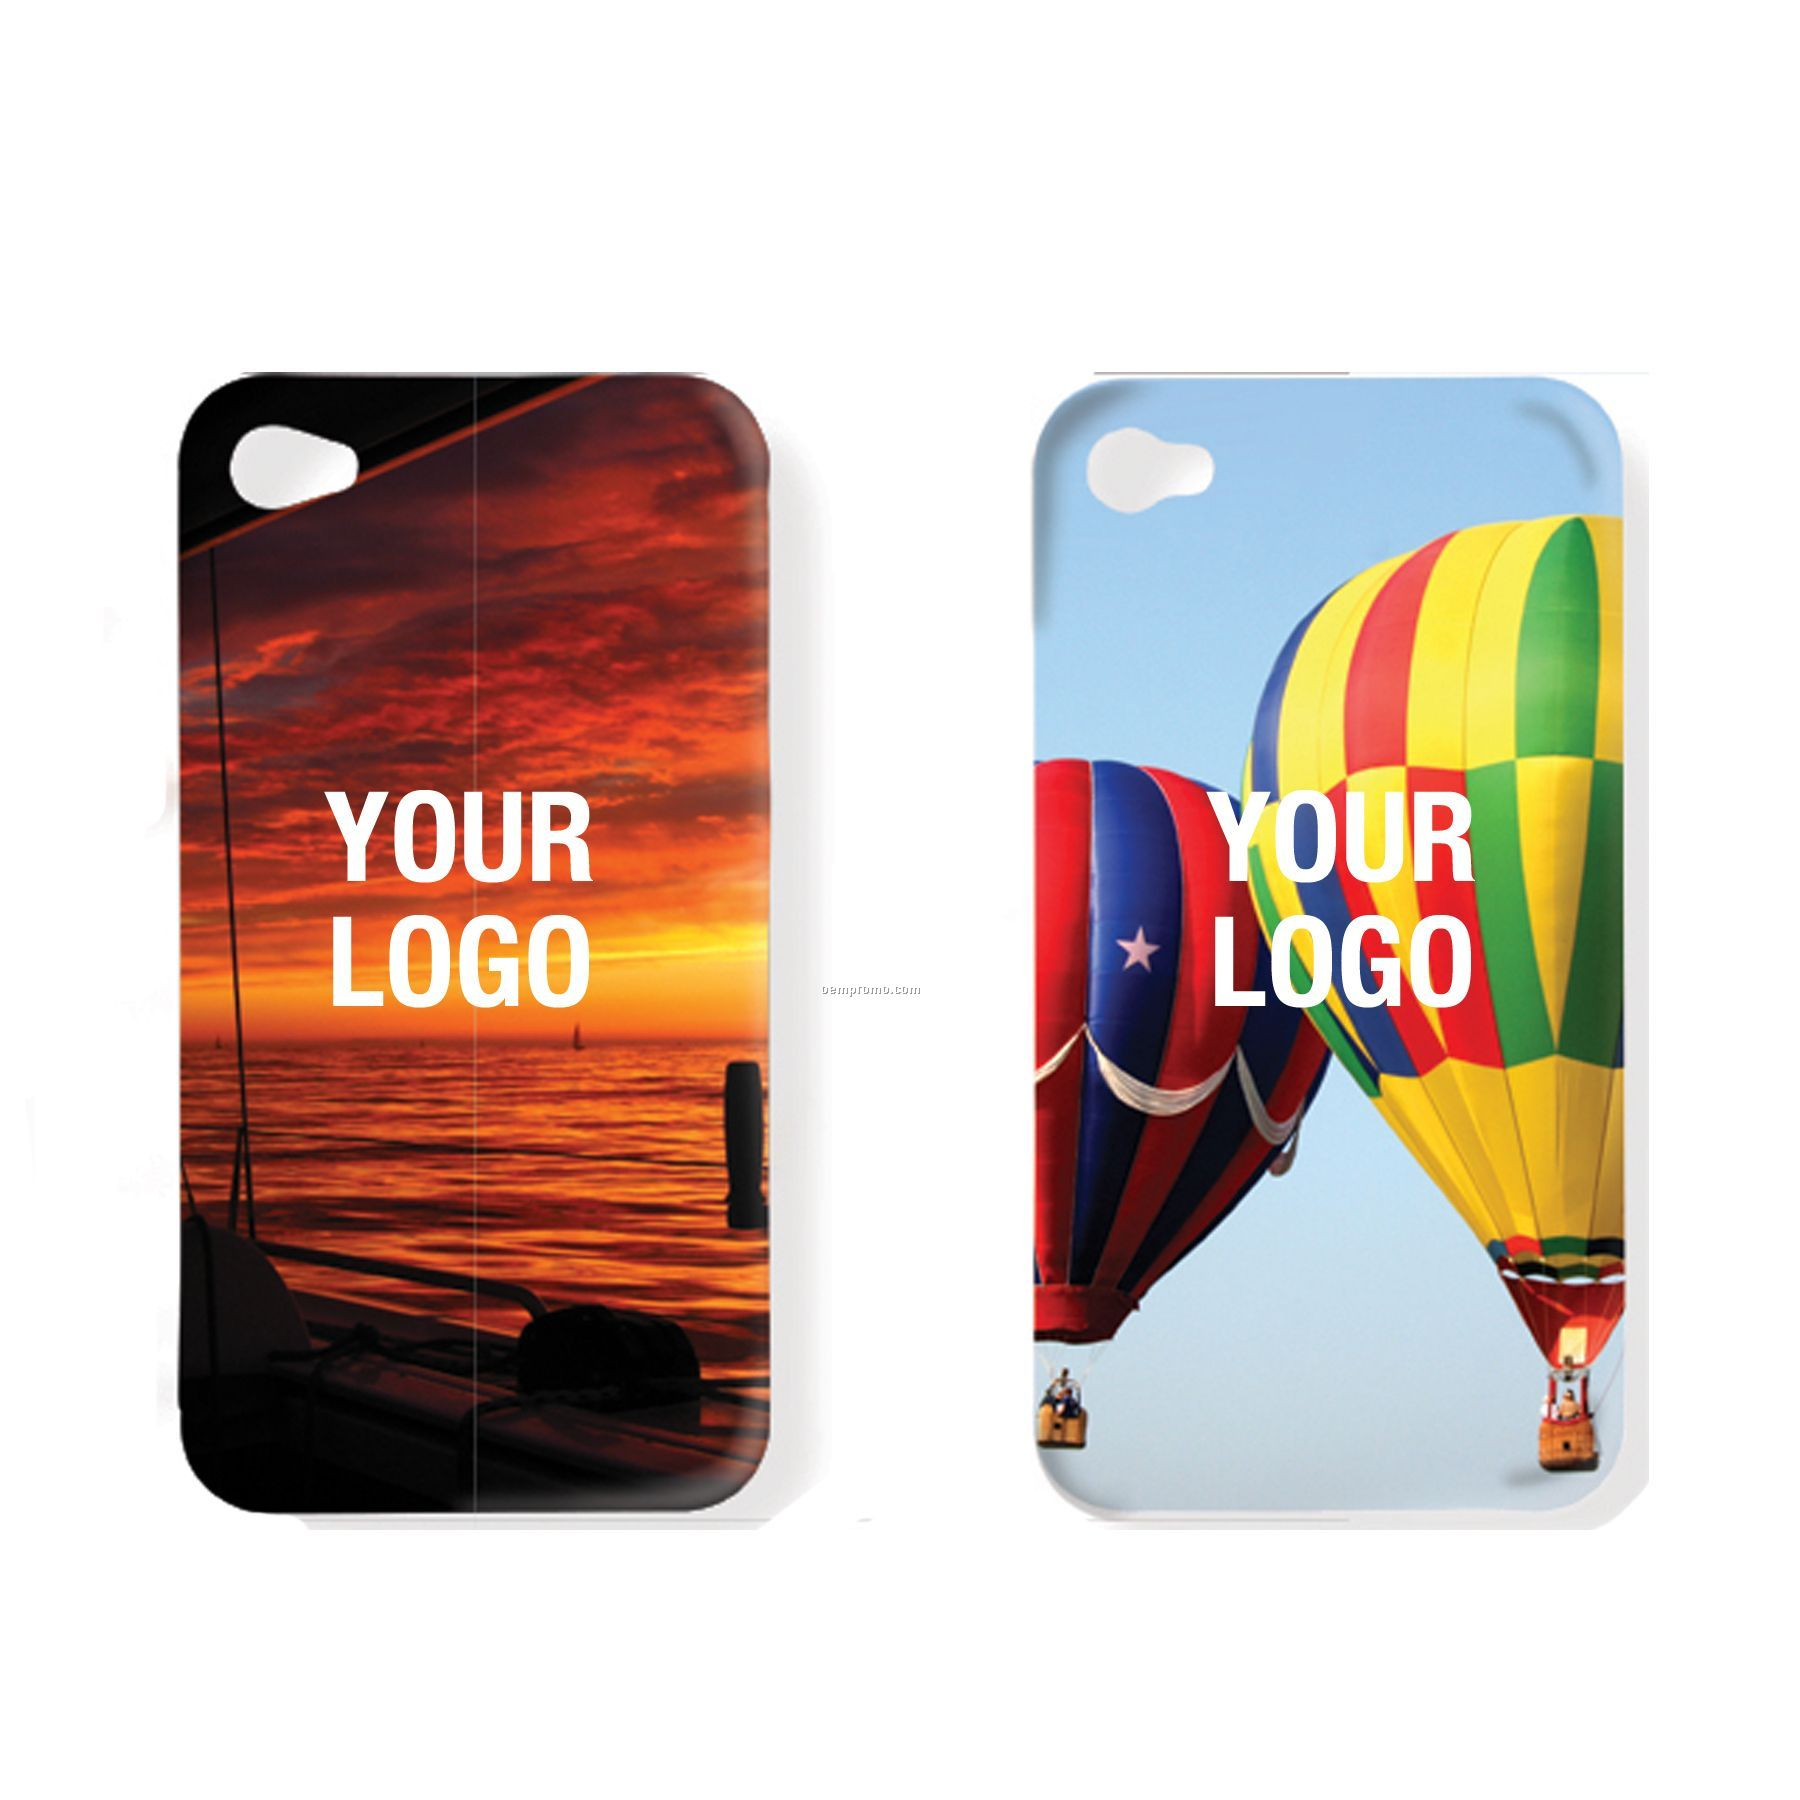 Ohcases coupons